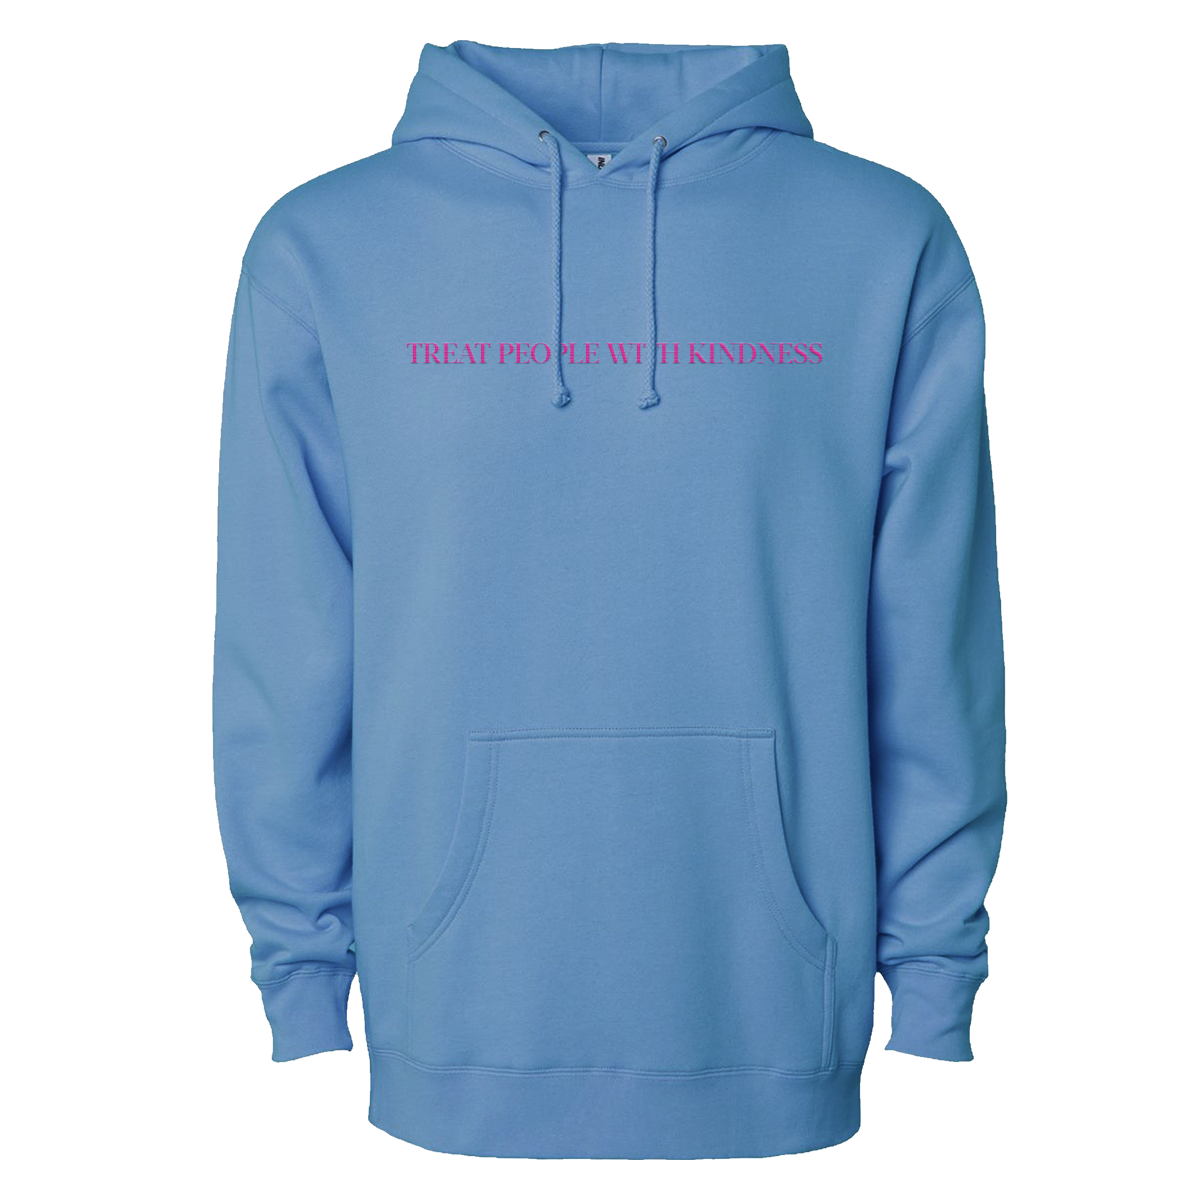 Treat People With Kindness Hoodie (Blue) + Digital Download - Harry Styles EU